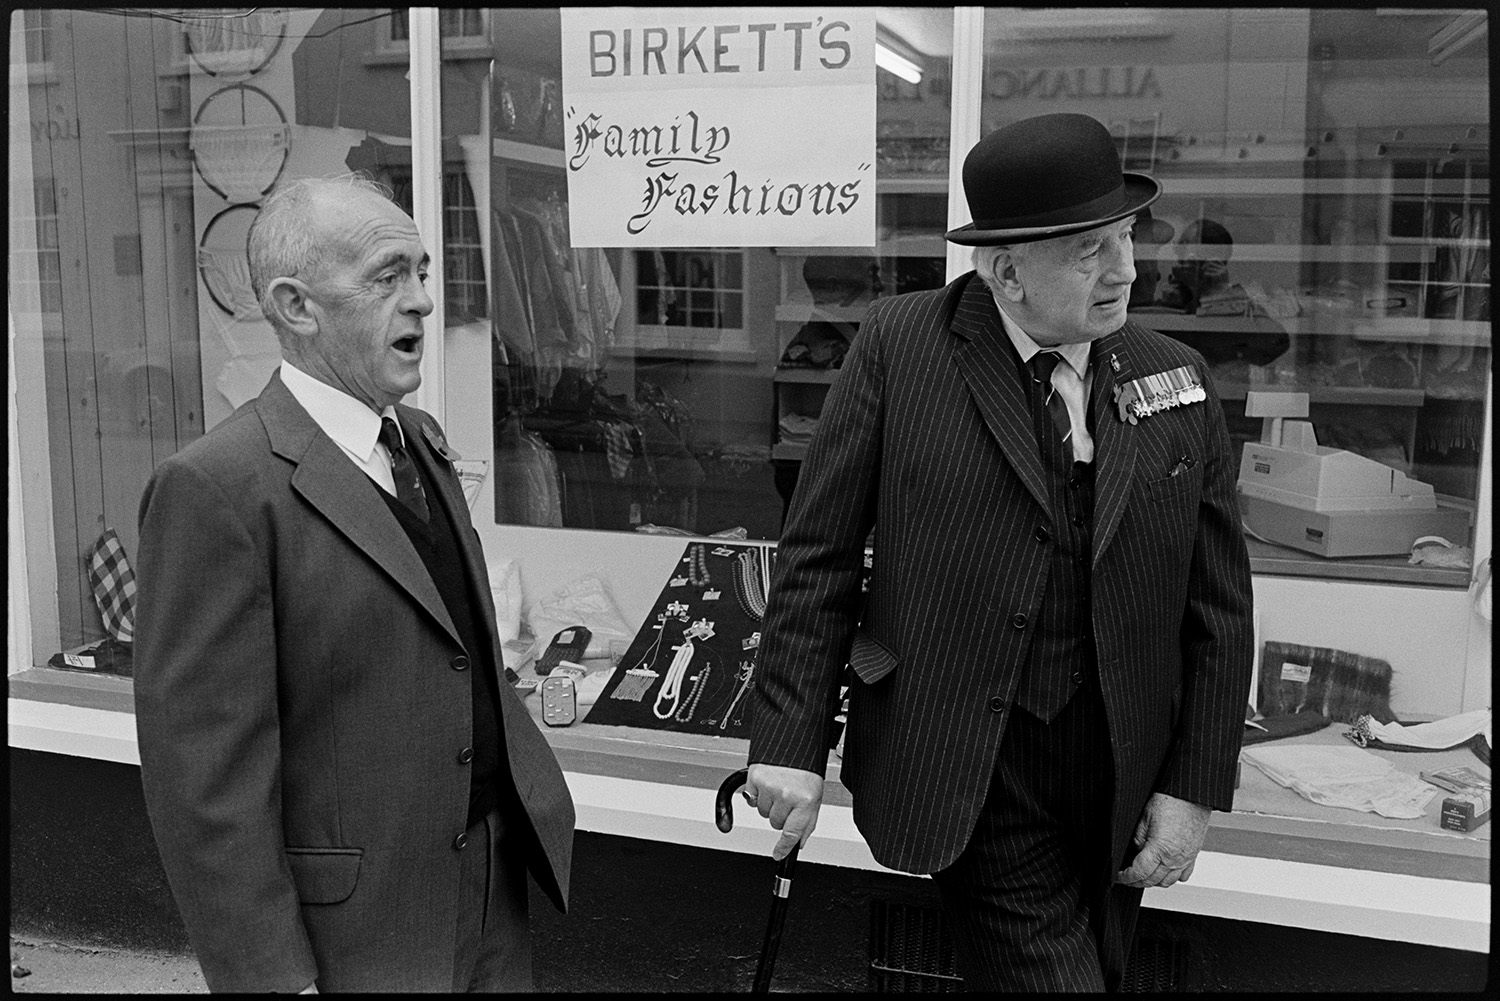 Men and women assembling for Remembrance Sunday Parade, some with bowler hats and medals.<br /> [Two men attending the Remembrance Sunday Parade at Chulmleigh. One man is dressed in a suit with a bowler hat and is wearing medals. They are standing outside the shop front of Birkett's clothes shop in Fore Street.]